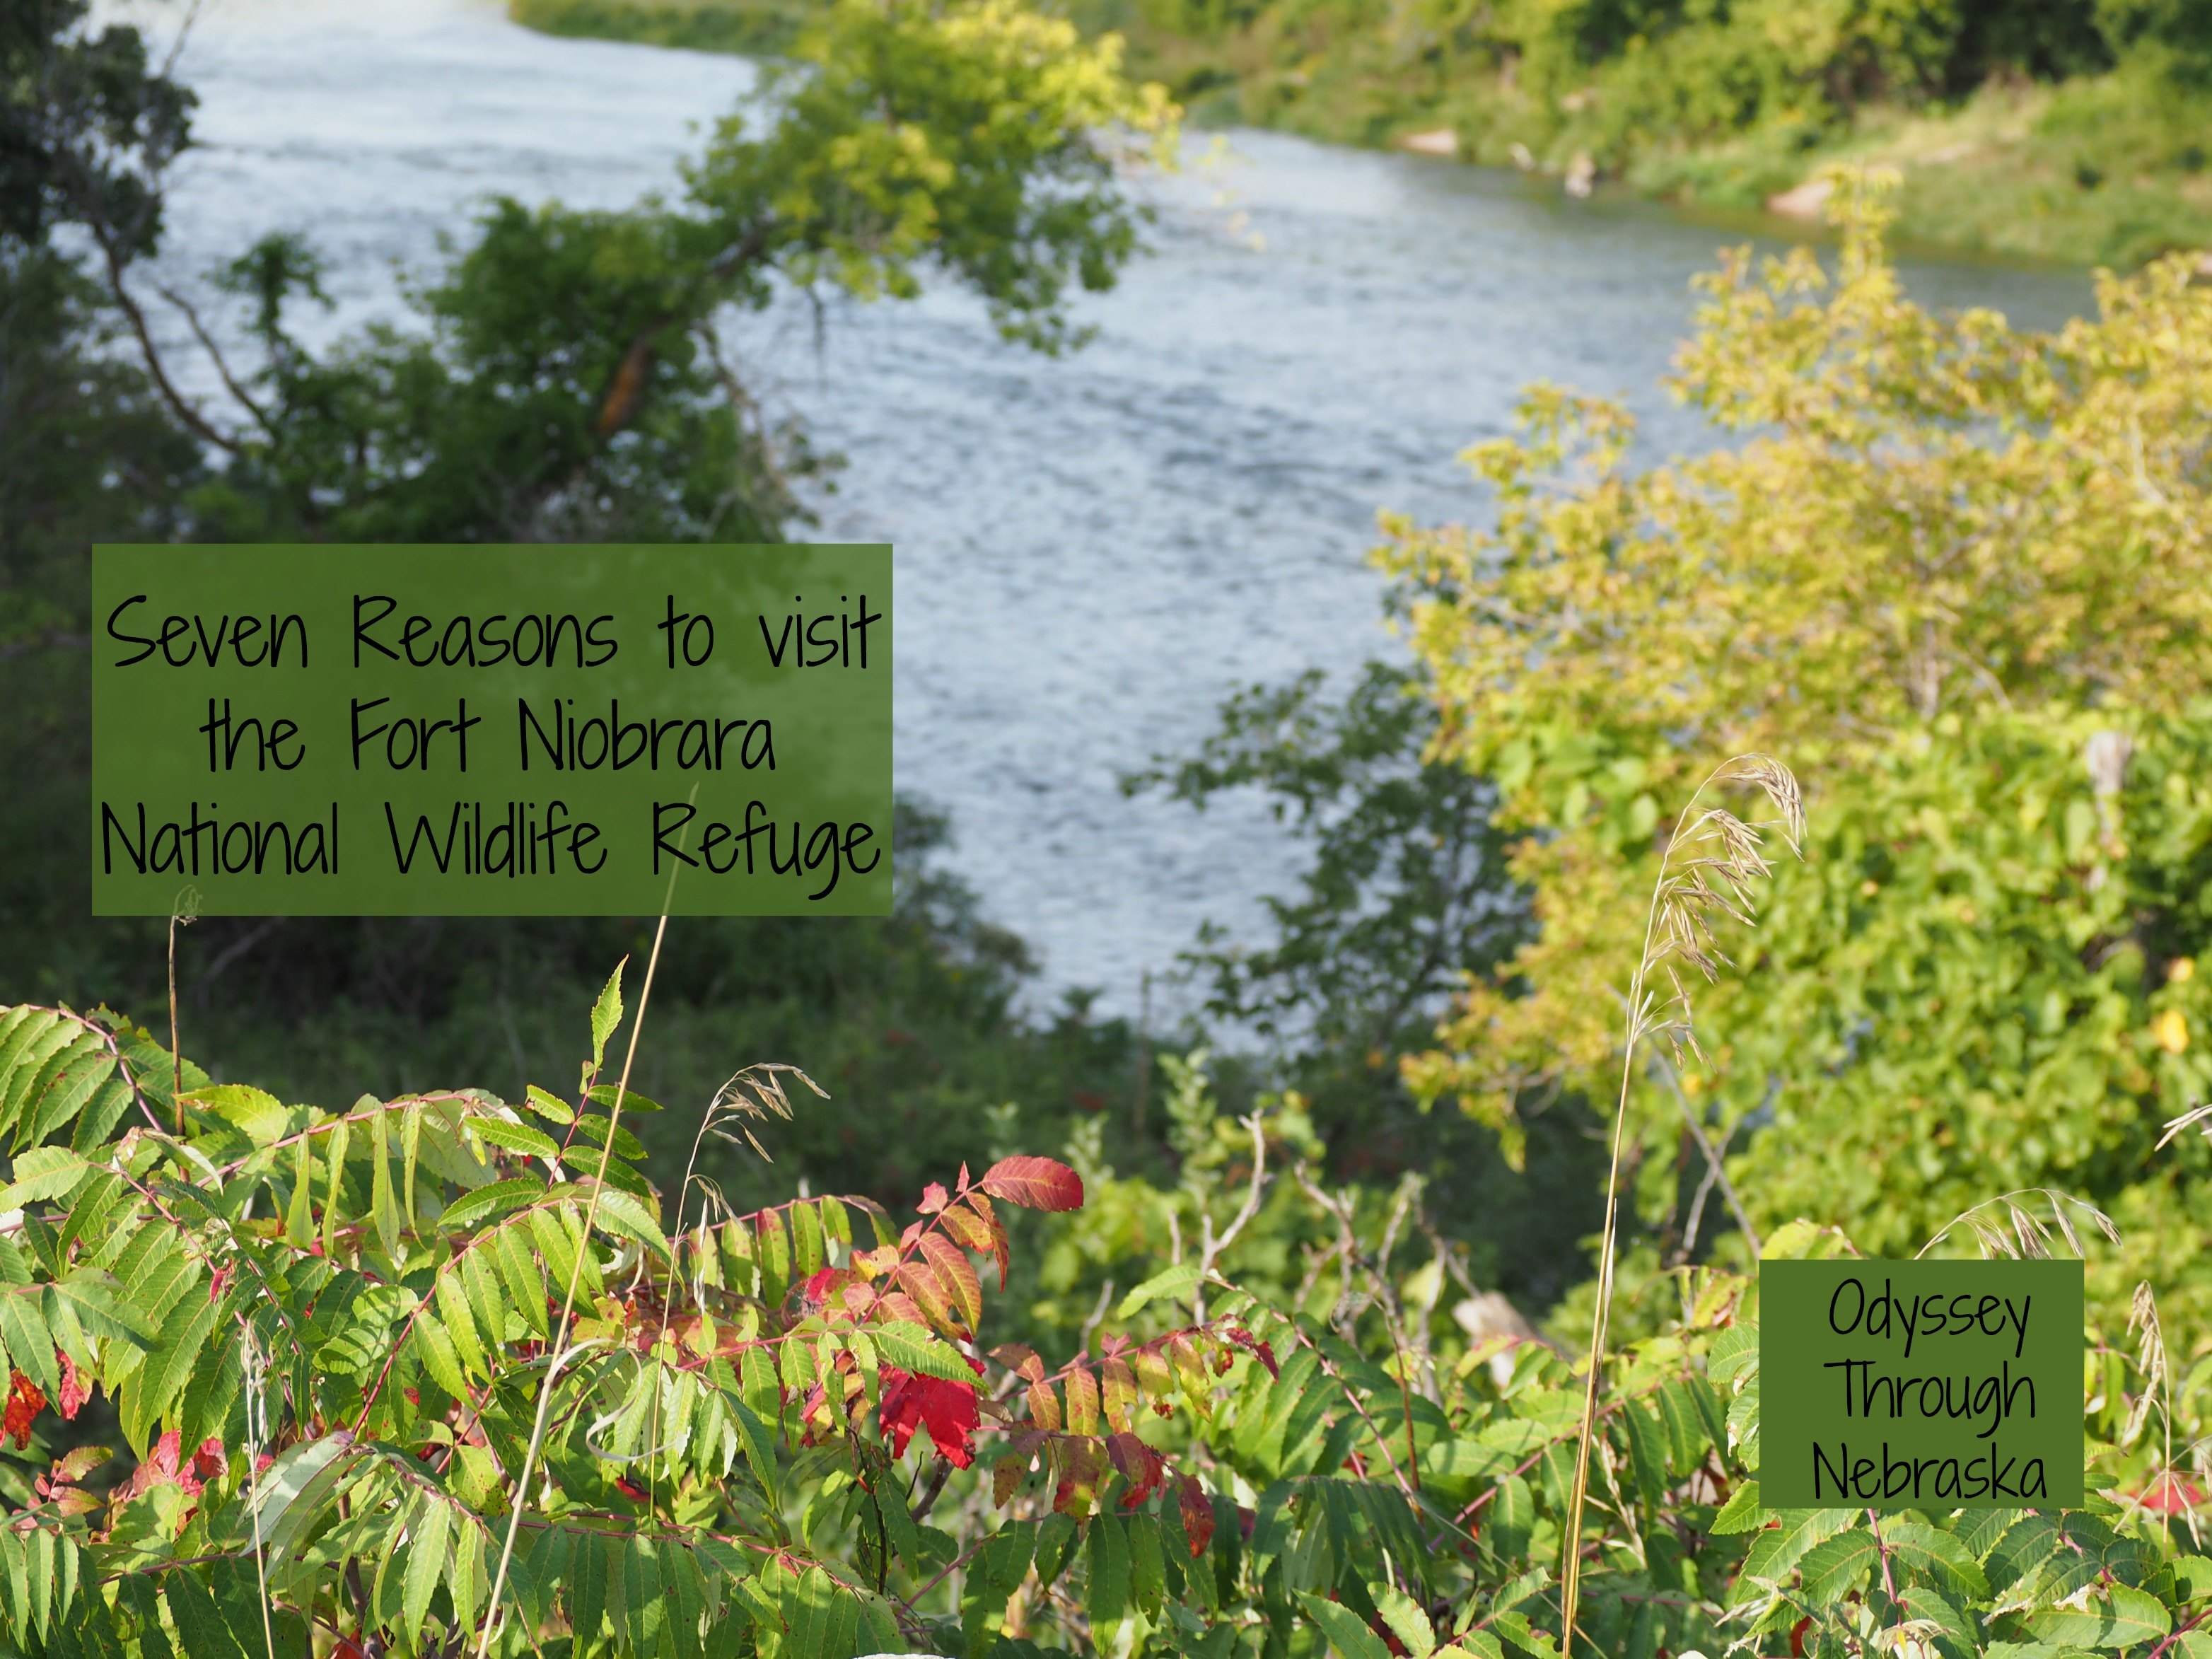 7 reasons to visit the Fort Niobrara National Wildlife Refuge